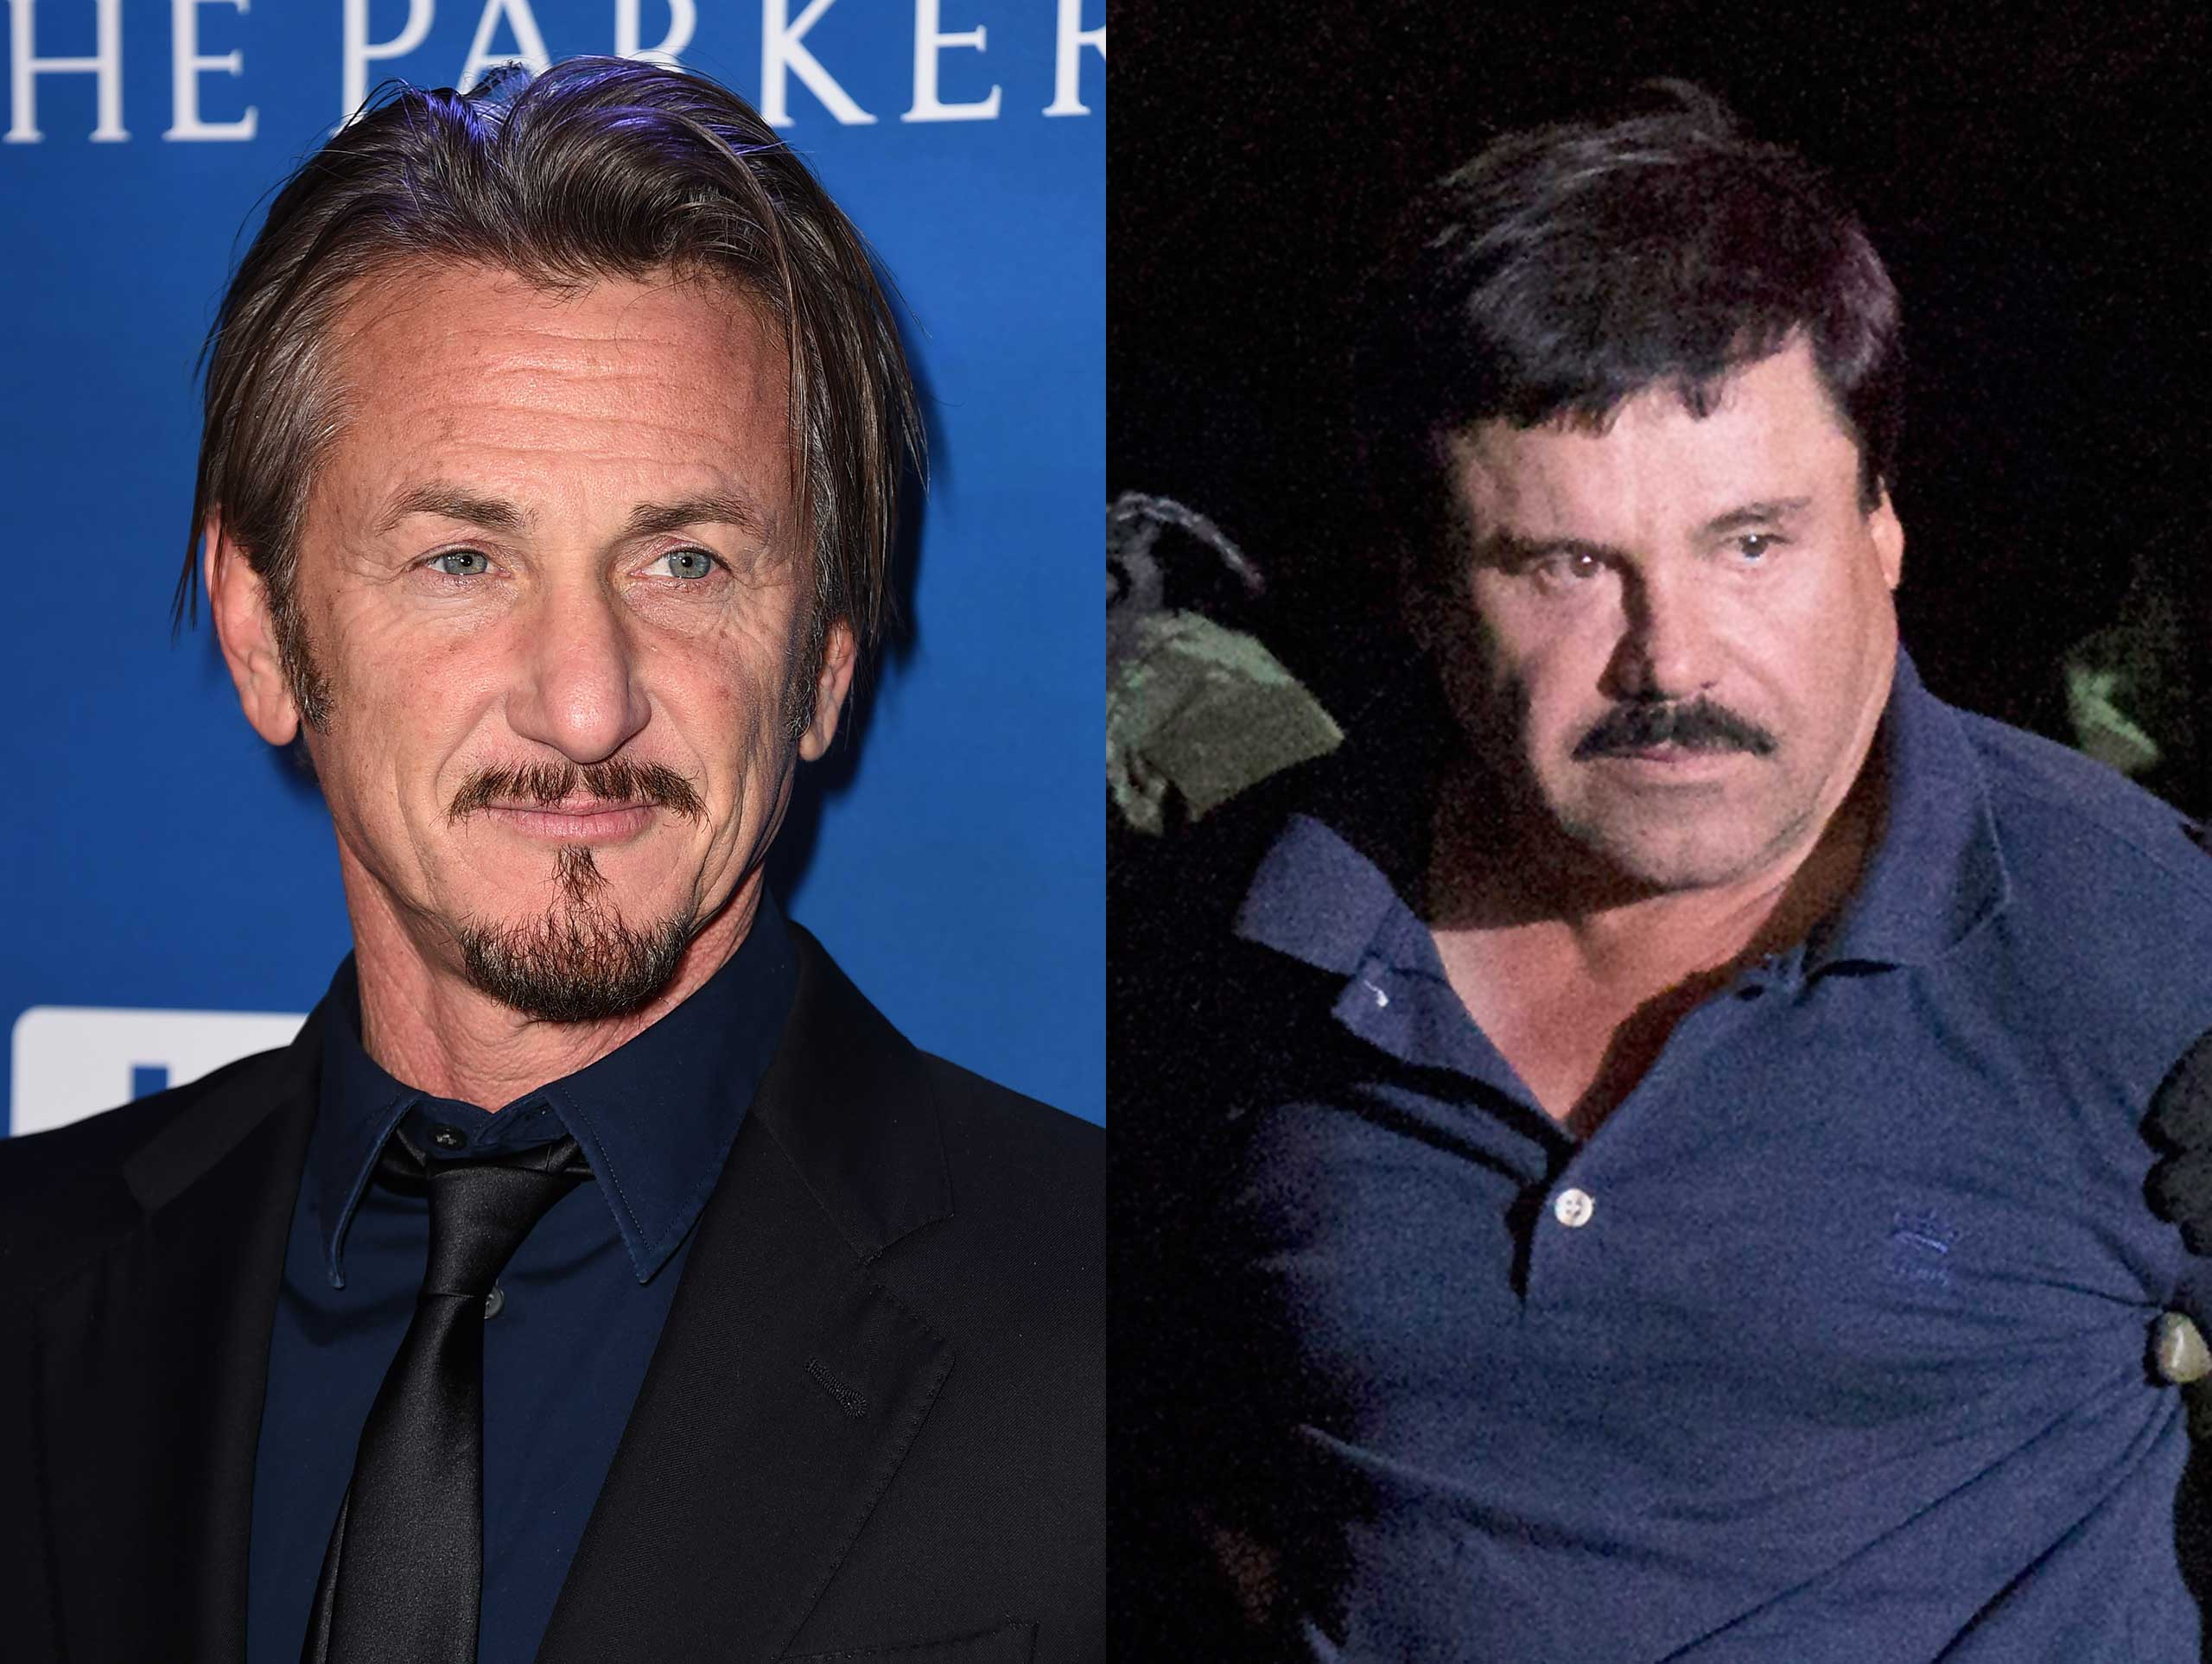 Sean Penn's Interview with El Chapo: 5 Things We Learned